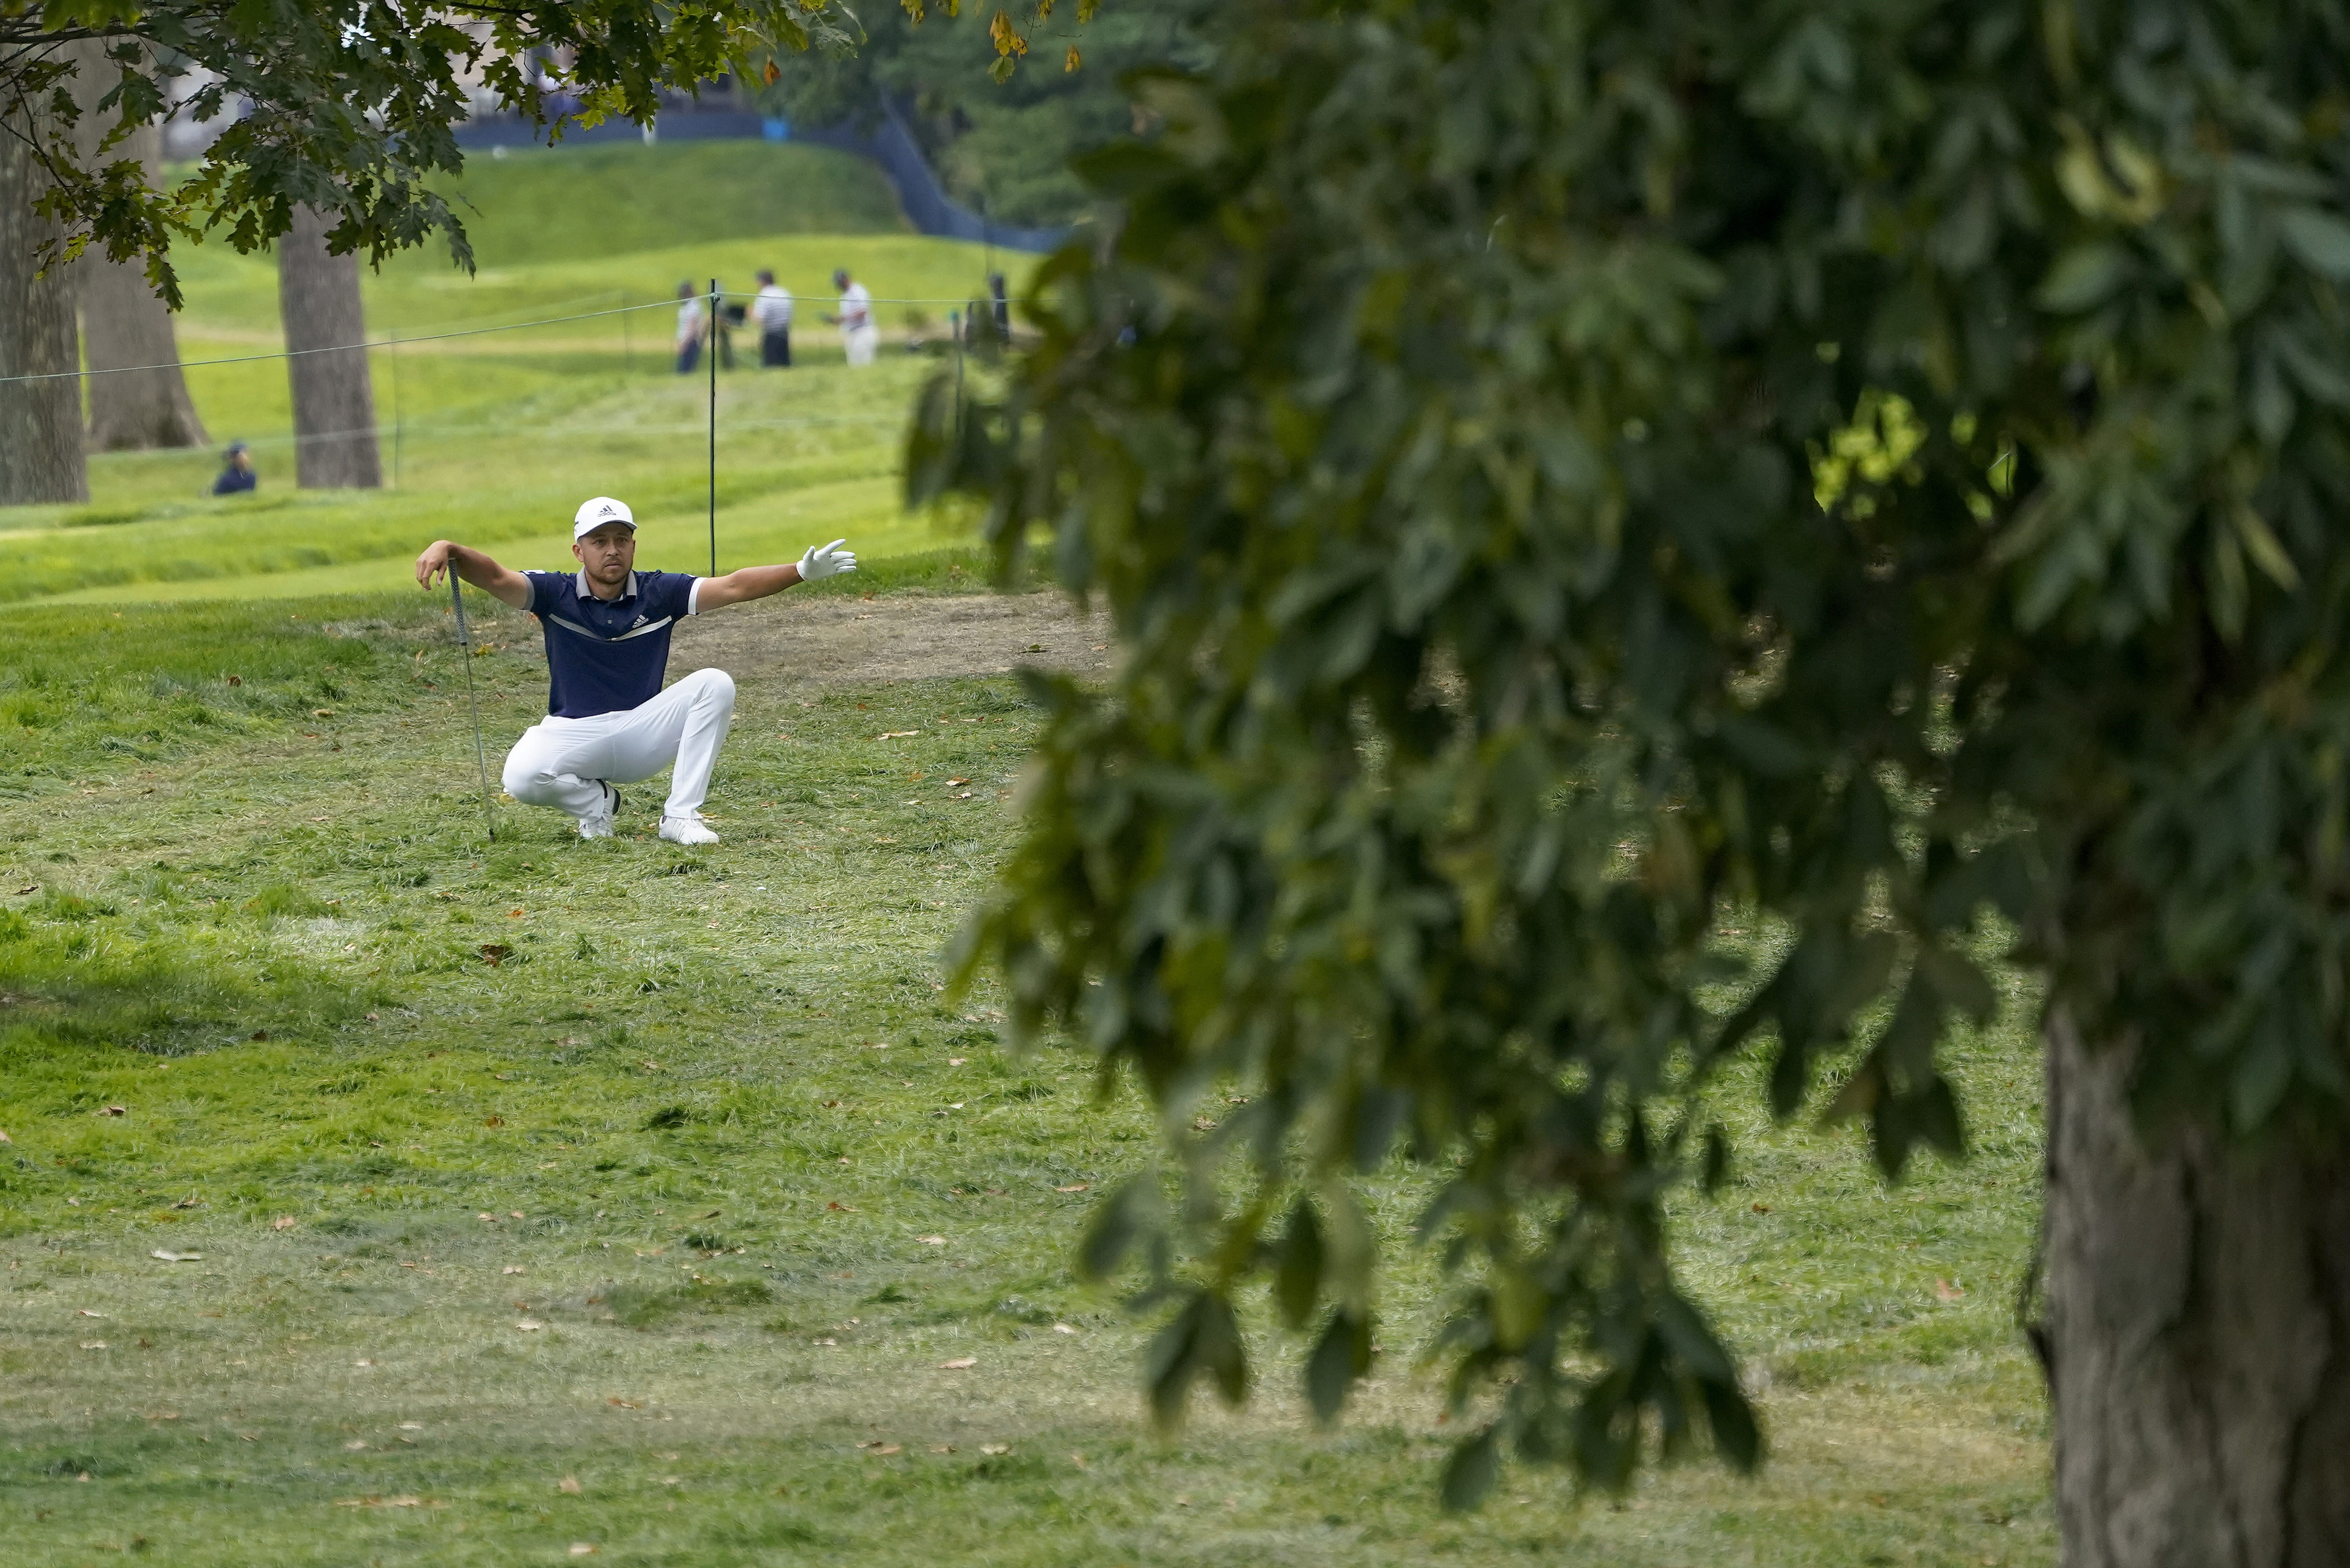 Xander Schauffele, of the United States, gestures to his caddie before hitting out of the rough on the 13th hole during the first round of the US Open Golf Championship, Thursday, Sept. 17, 2020, in Mamaroneck, N.Y. (AP Photo/Charles Krupa)